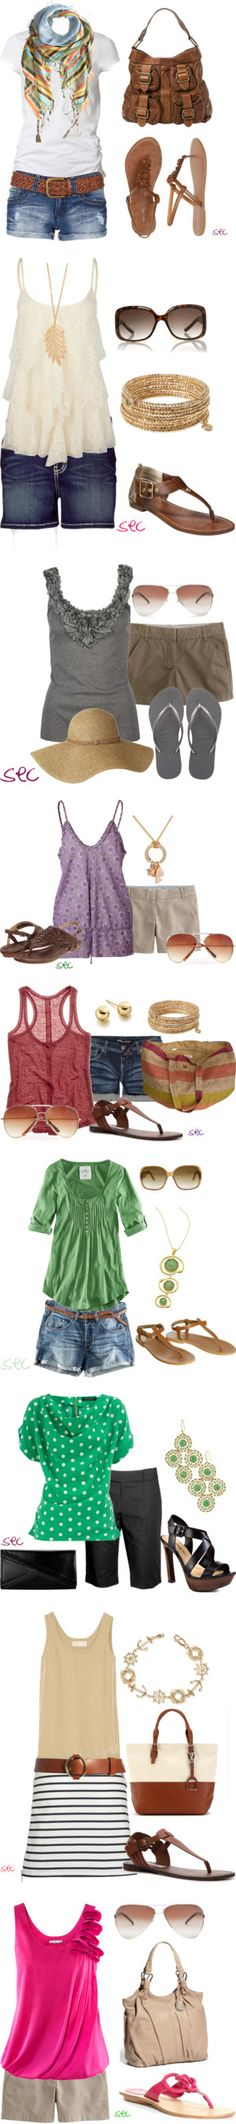 Summer style...I want all this in my closet